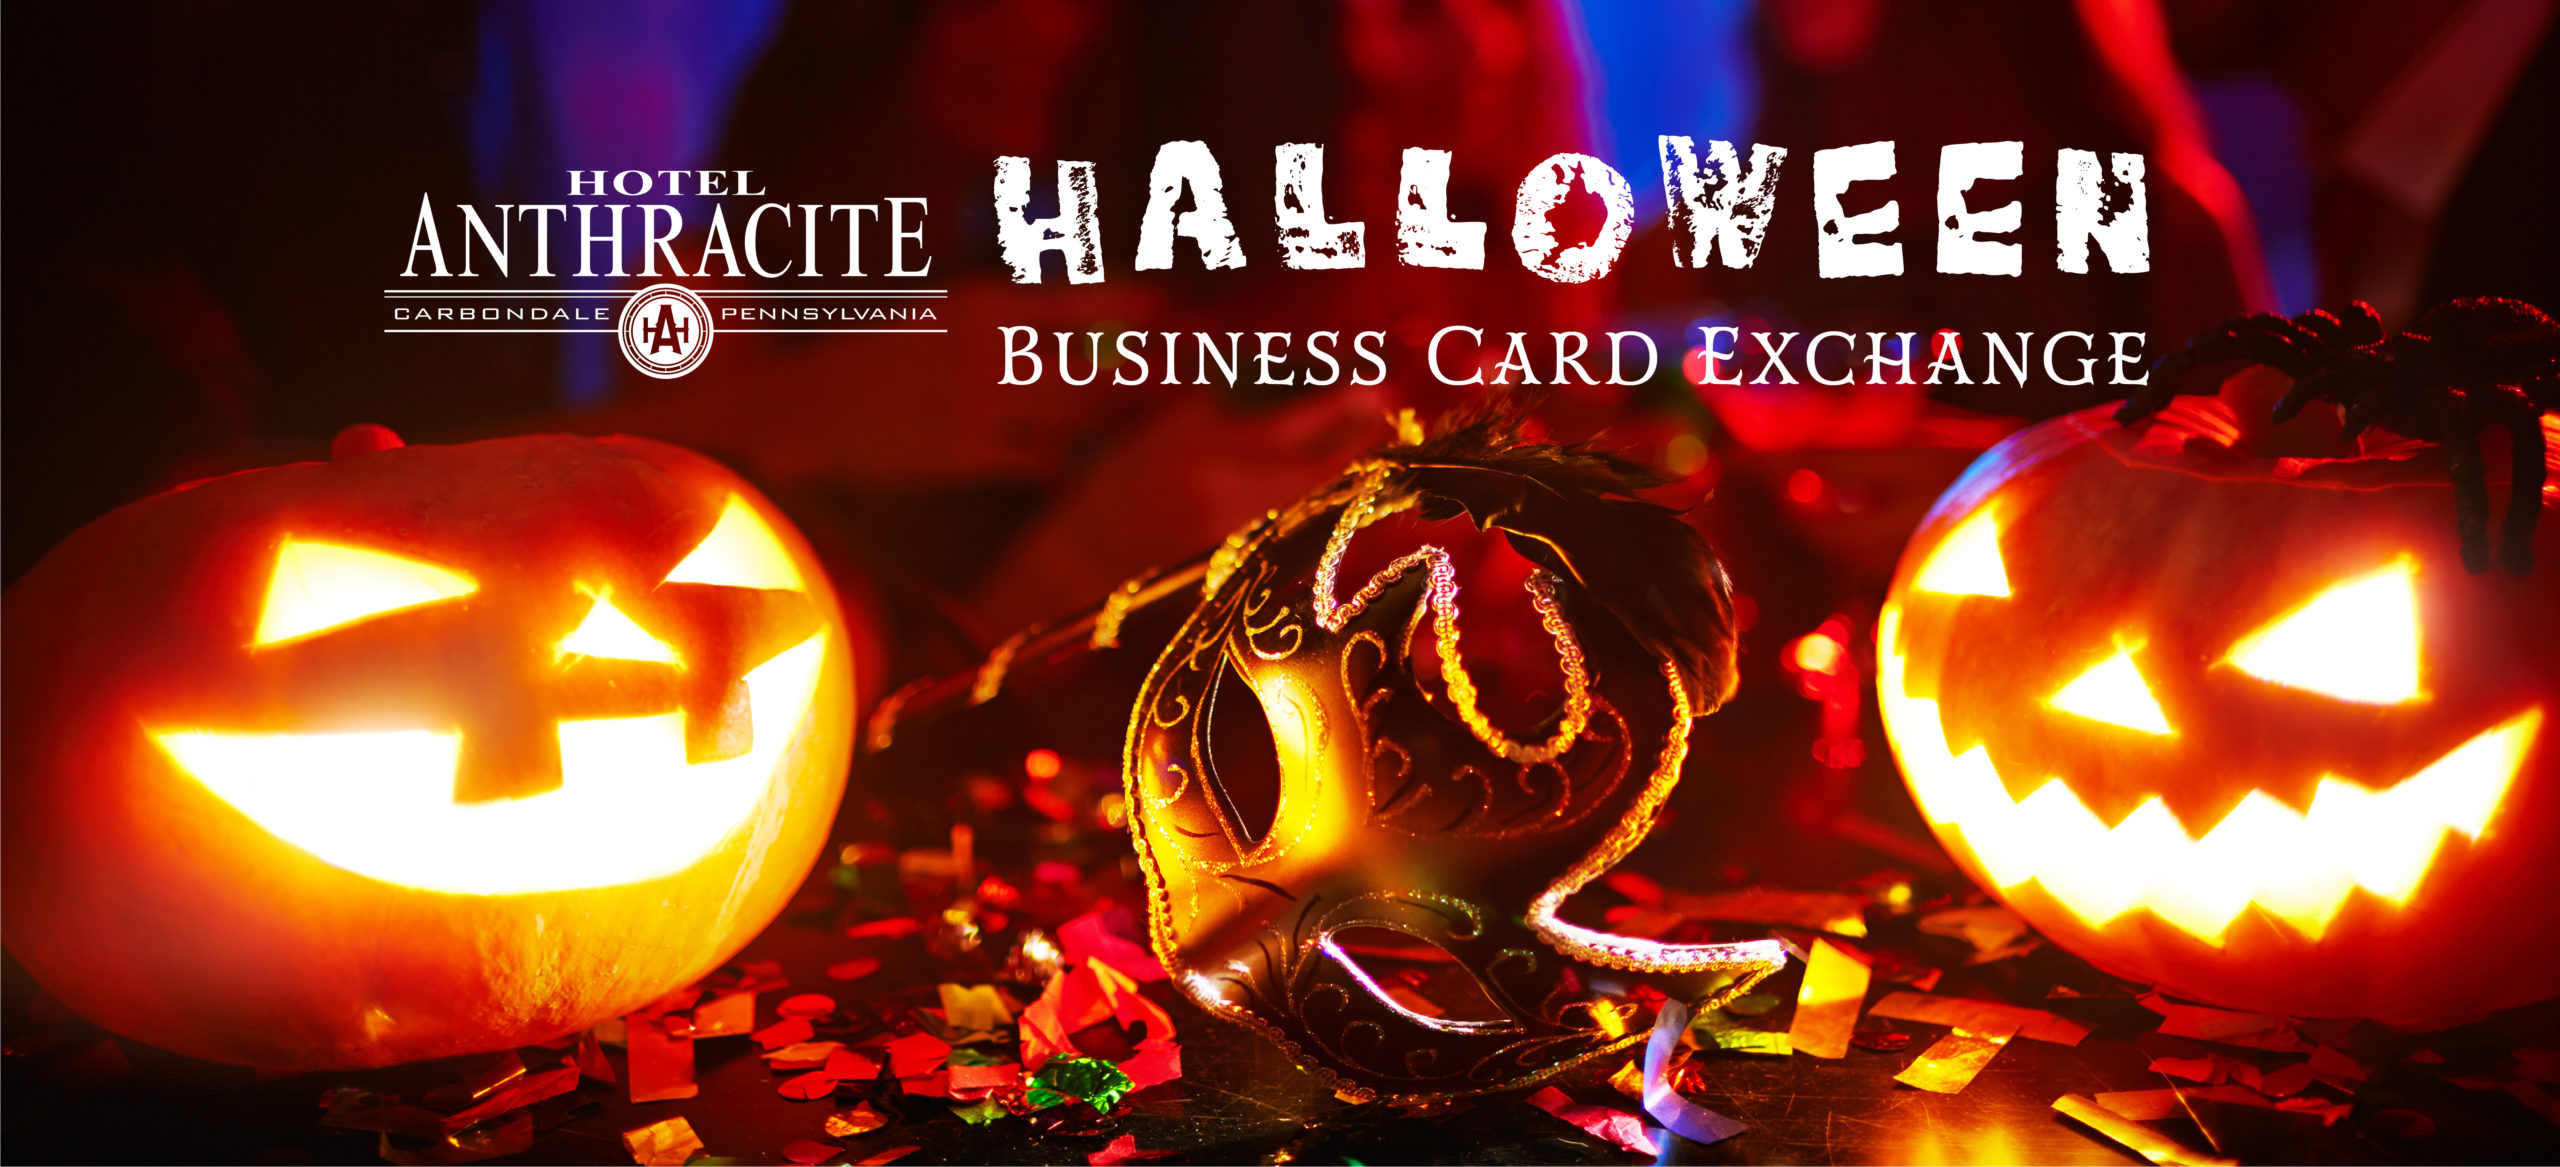 Halloween Business Card Exchange at Hotel Anthracite